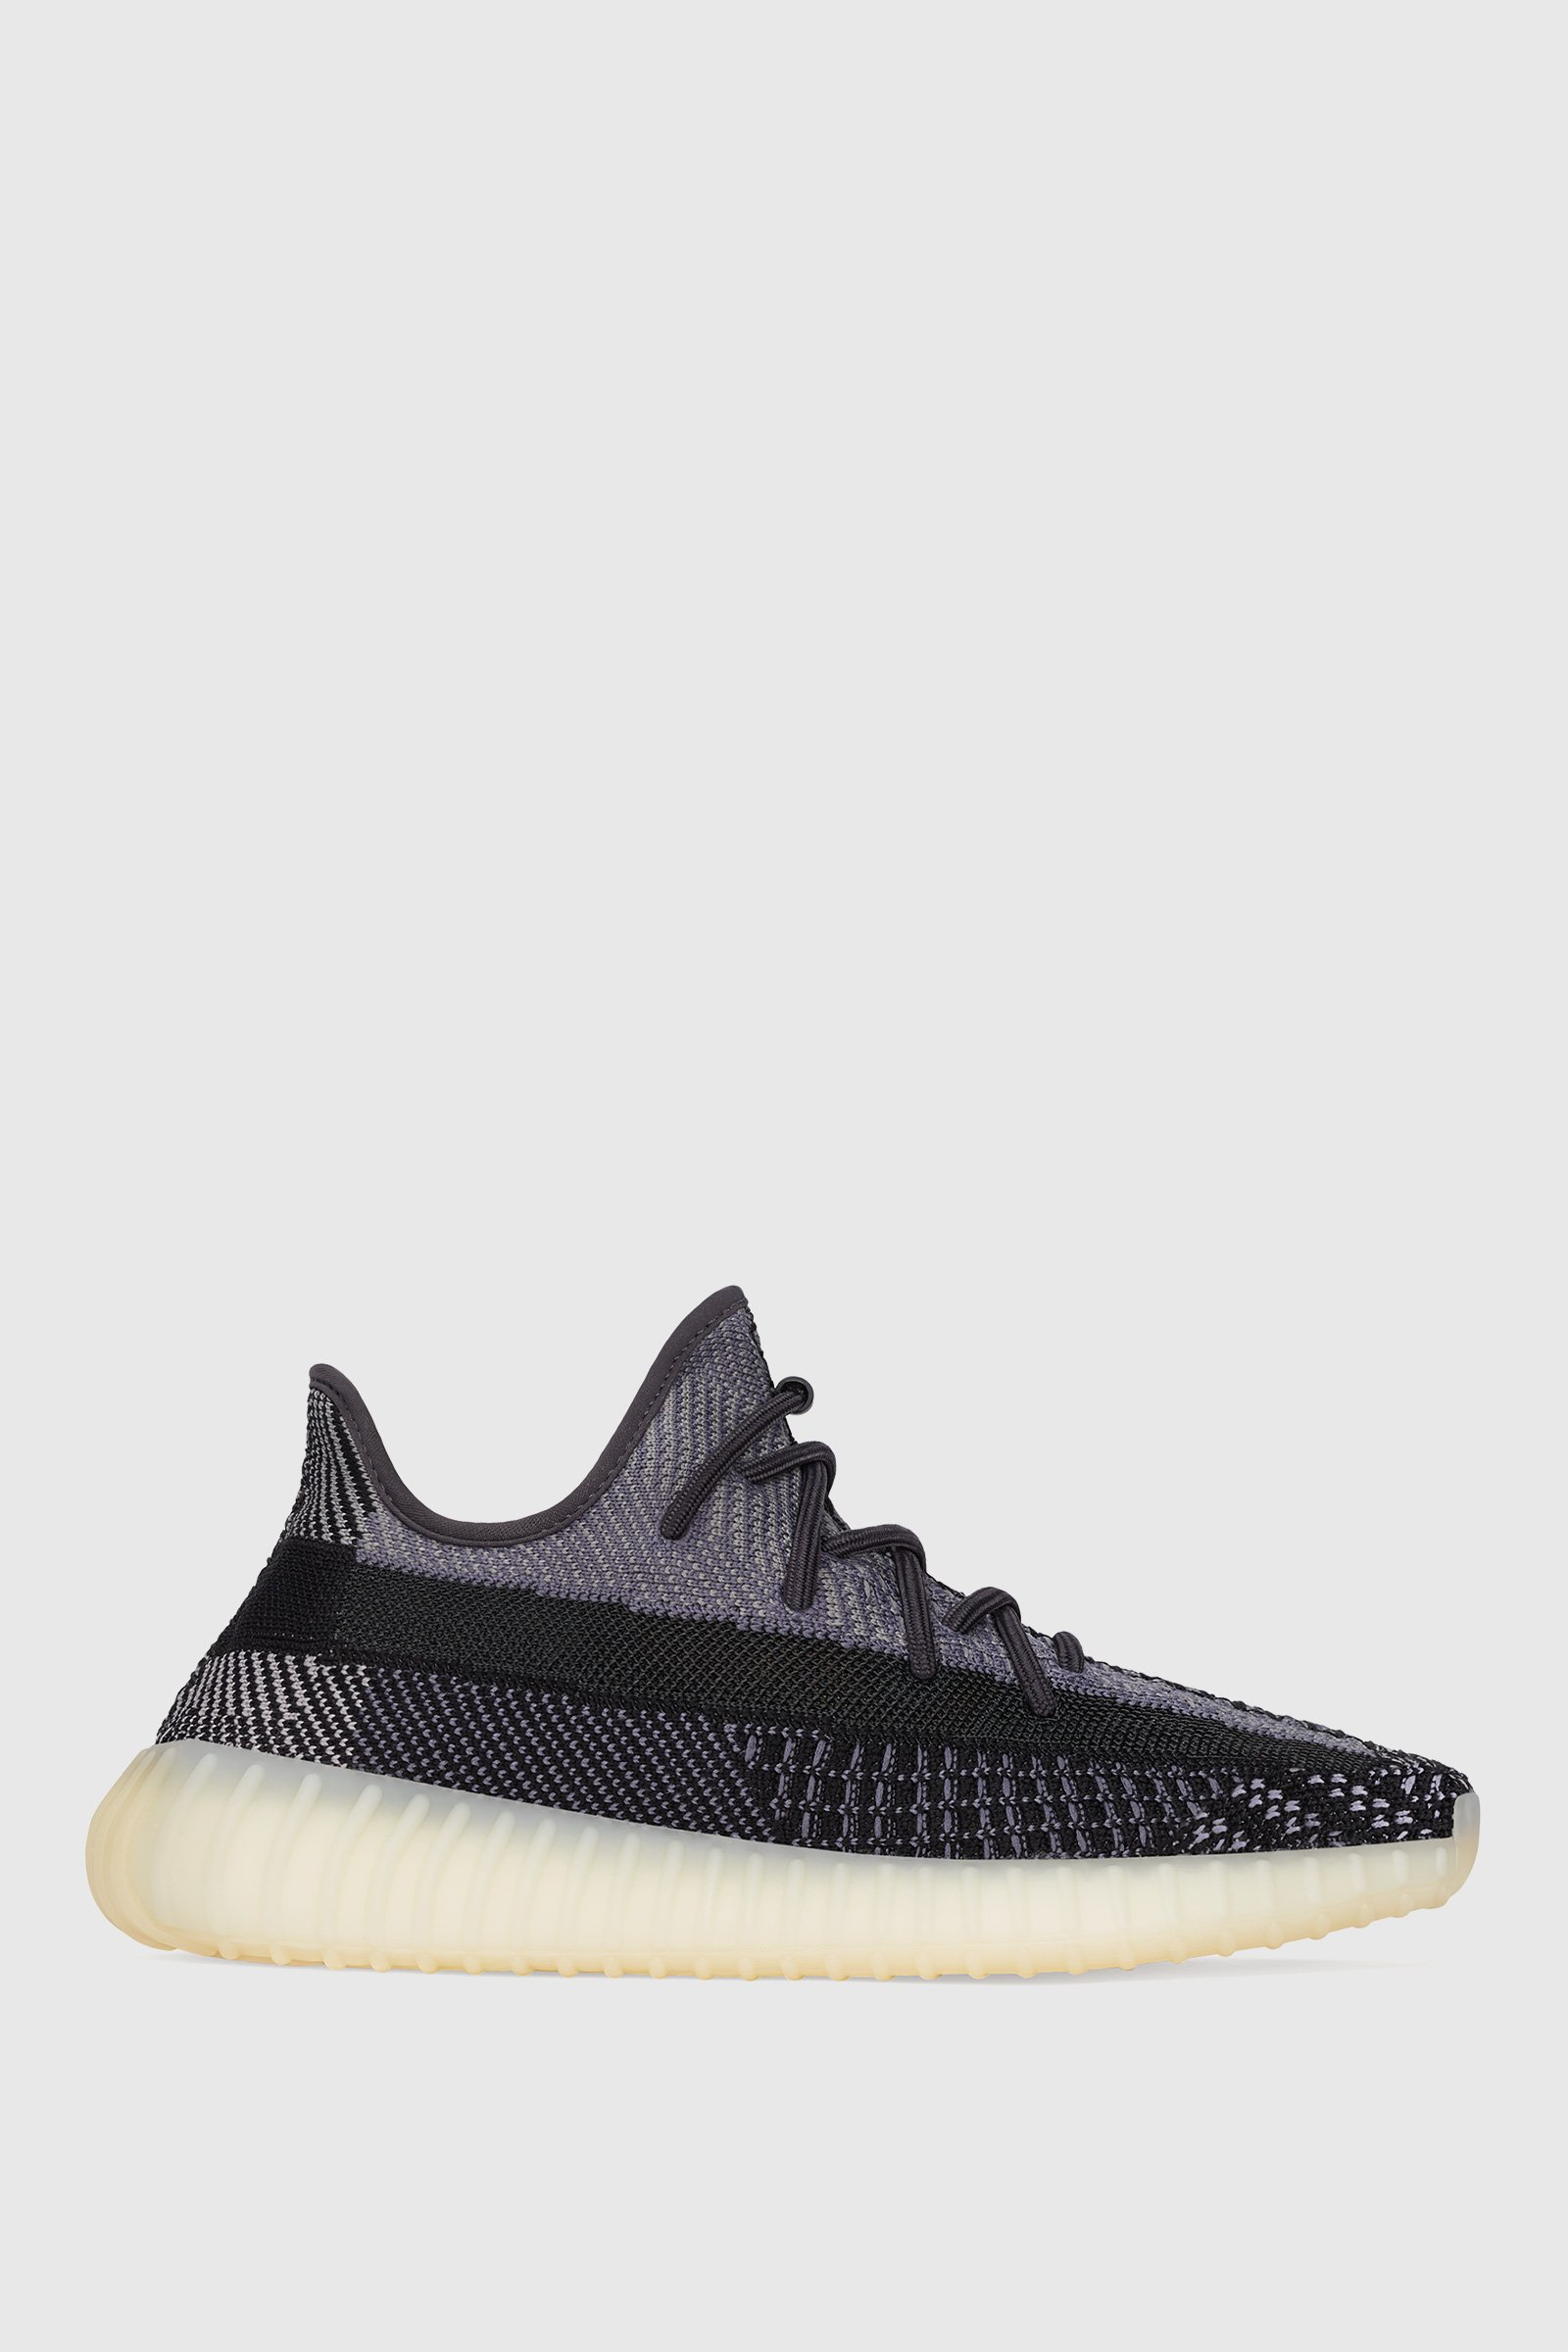 Wood Wood - Yeezy Boost 350 V2 'Carbon'